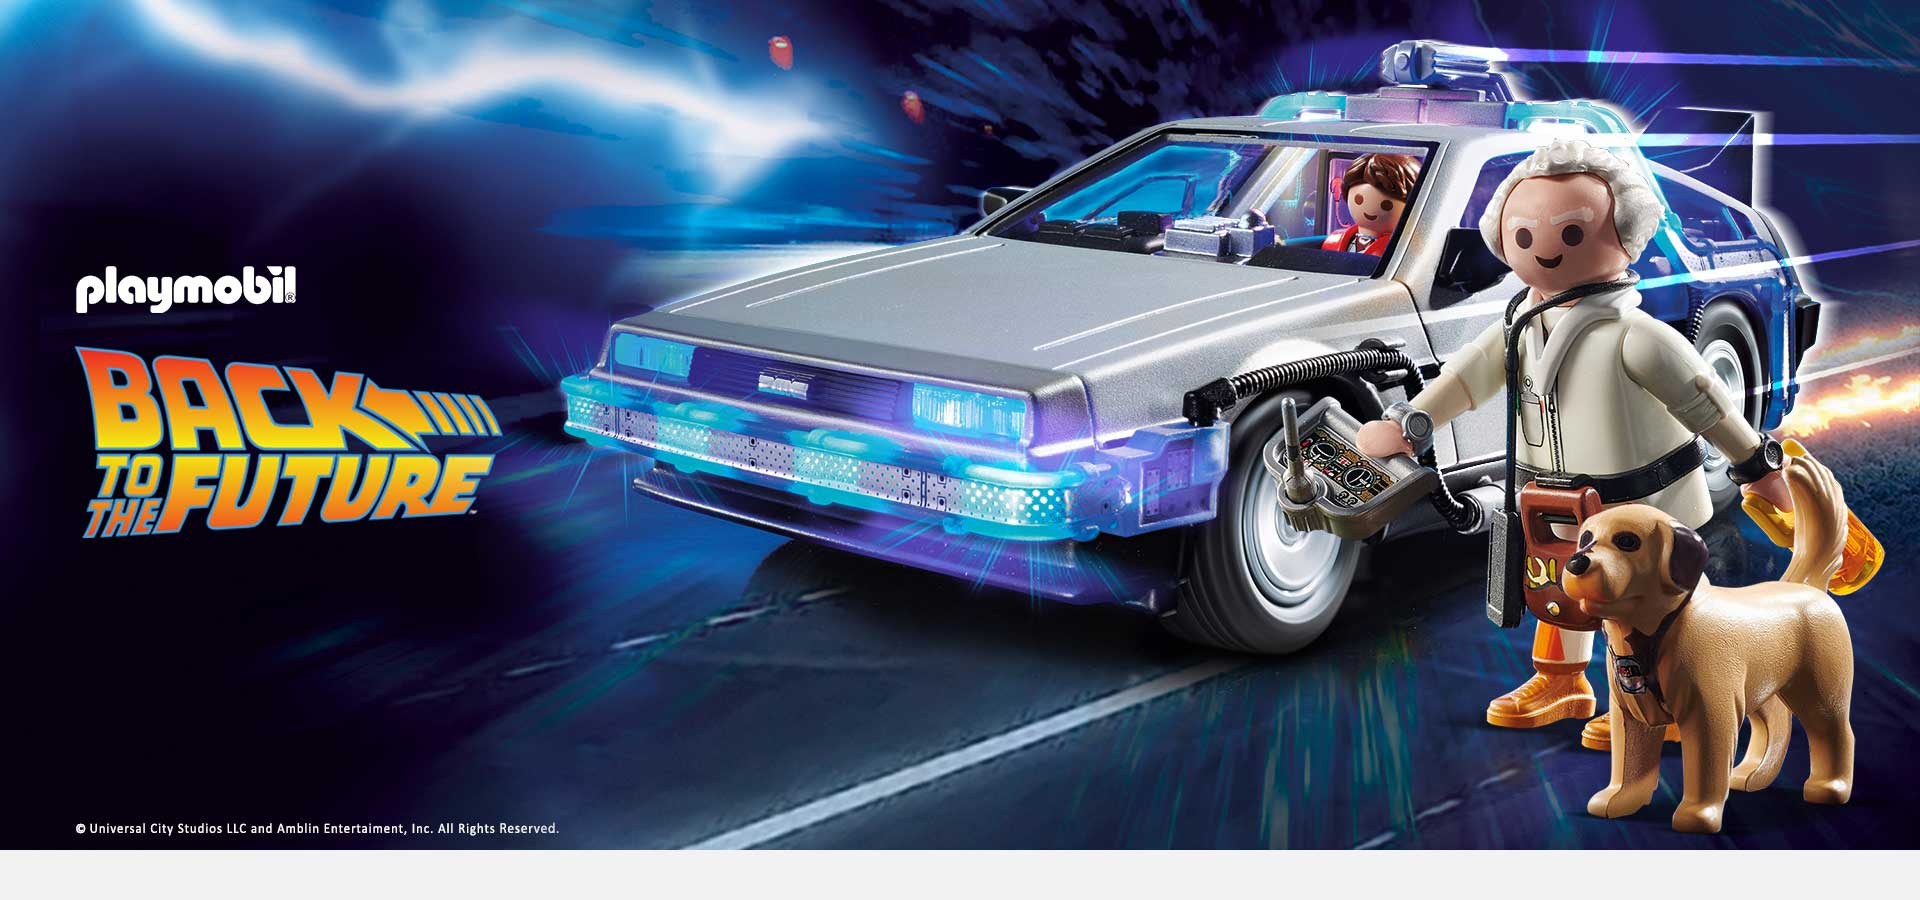 Playmobil Back to the future Banner.jpg